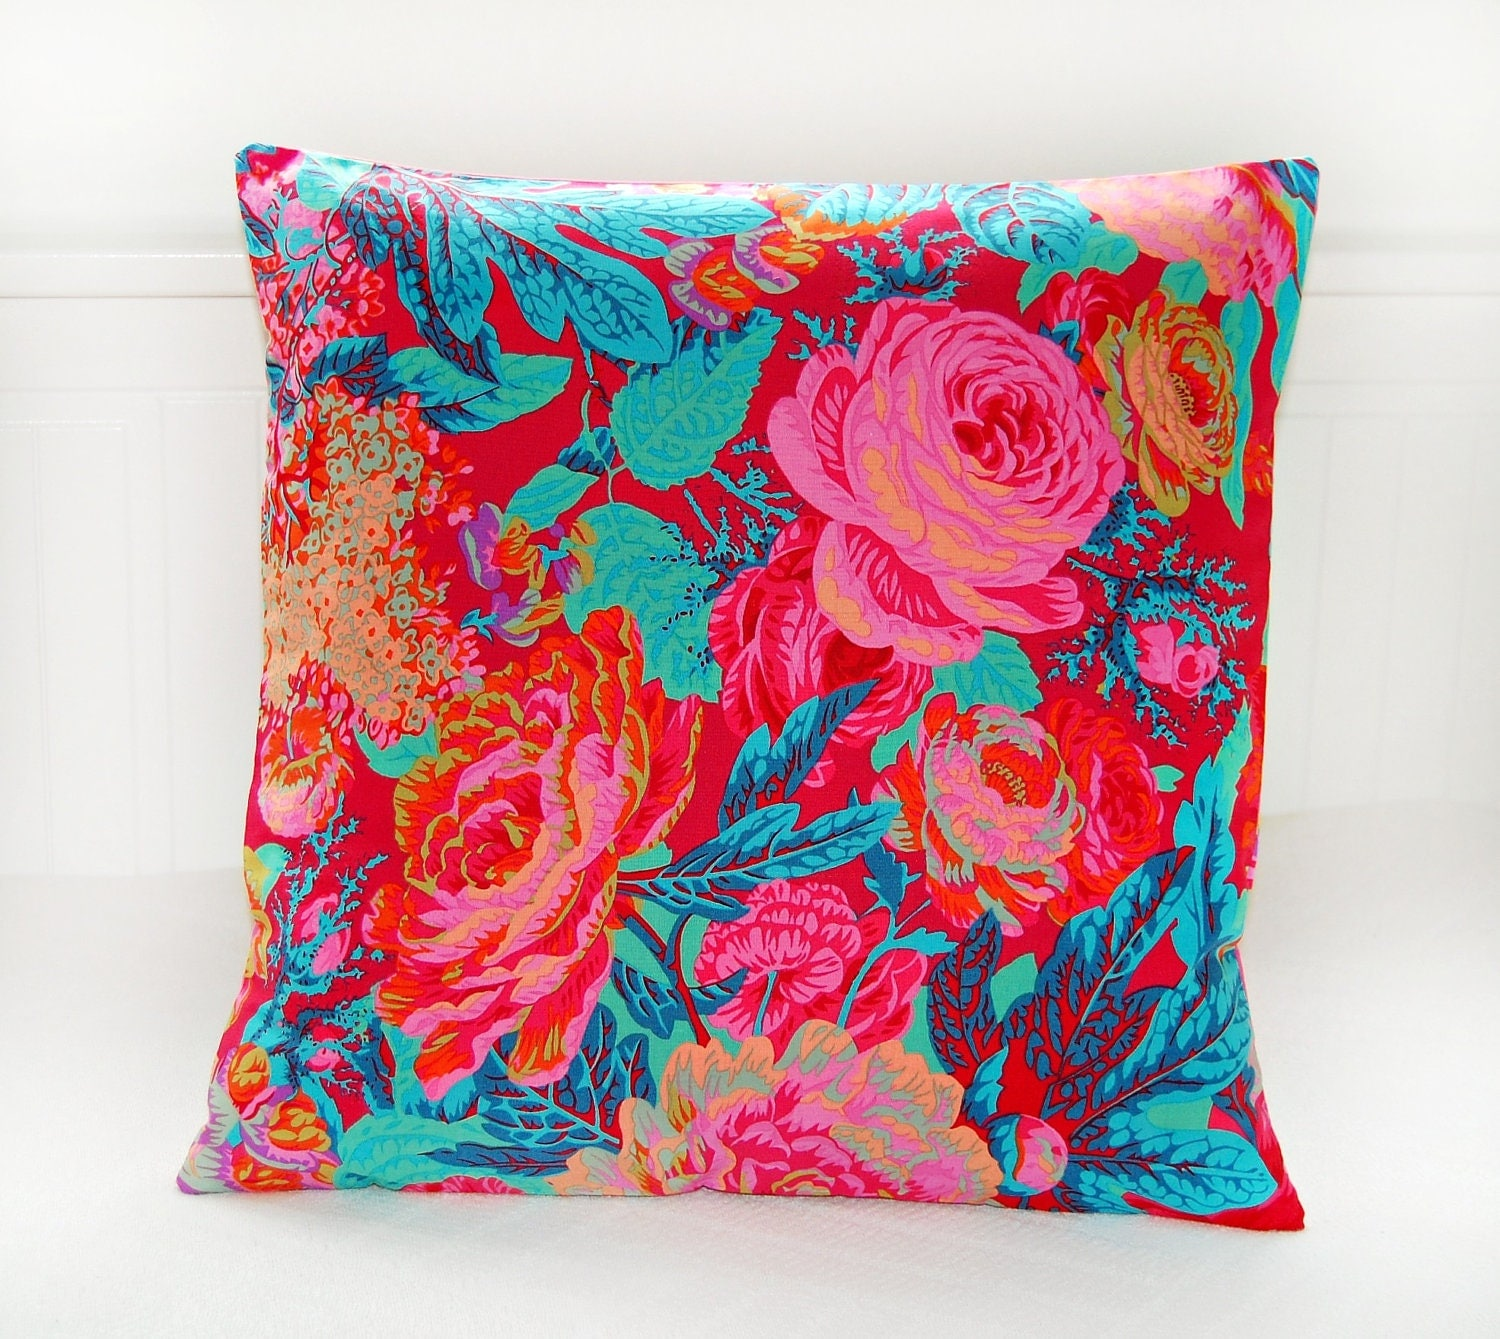 decorative pillow cover orange teal pink roses flowers